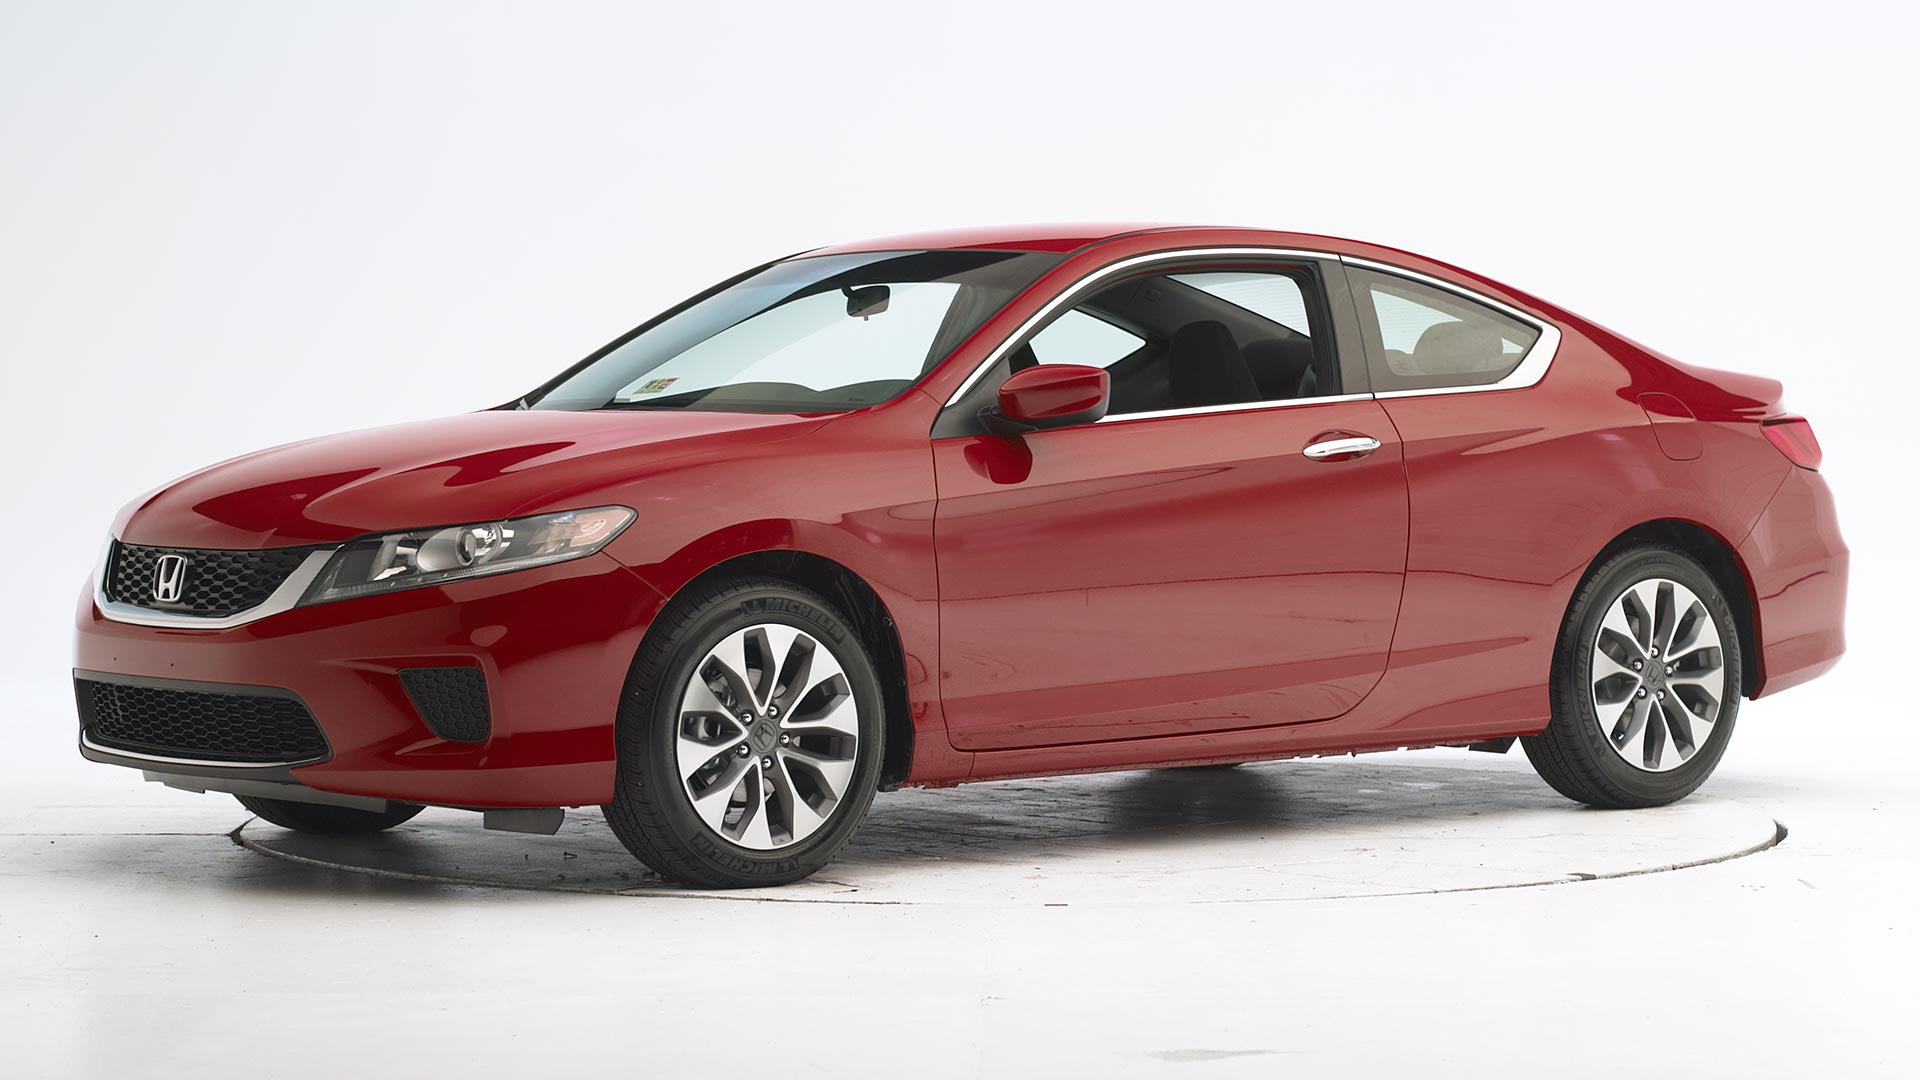 2013 Honda Accord 2-door coupe